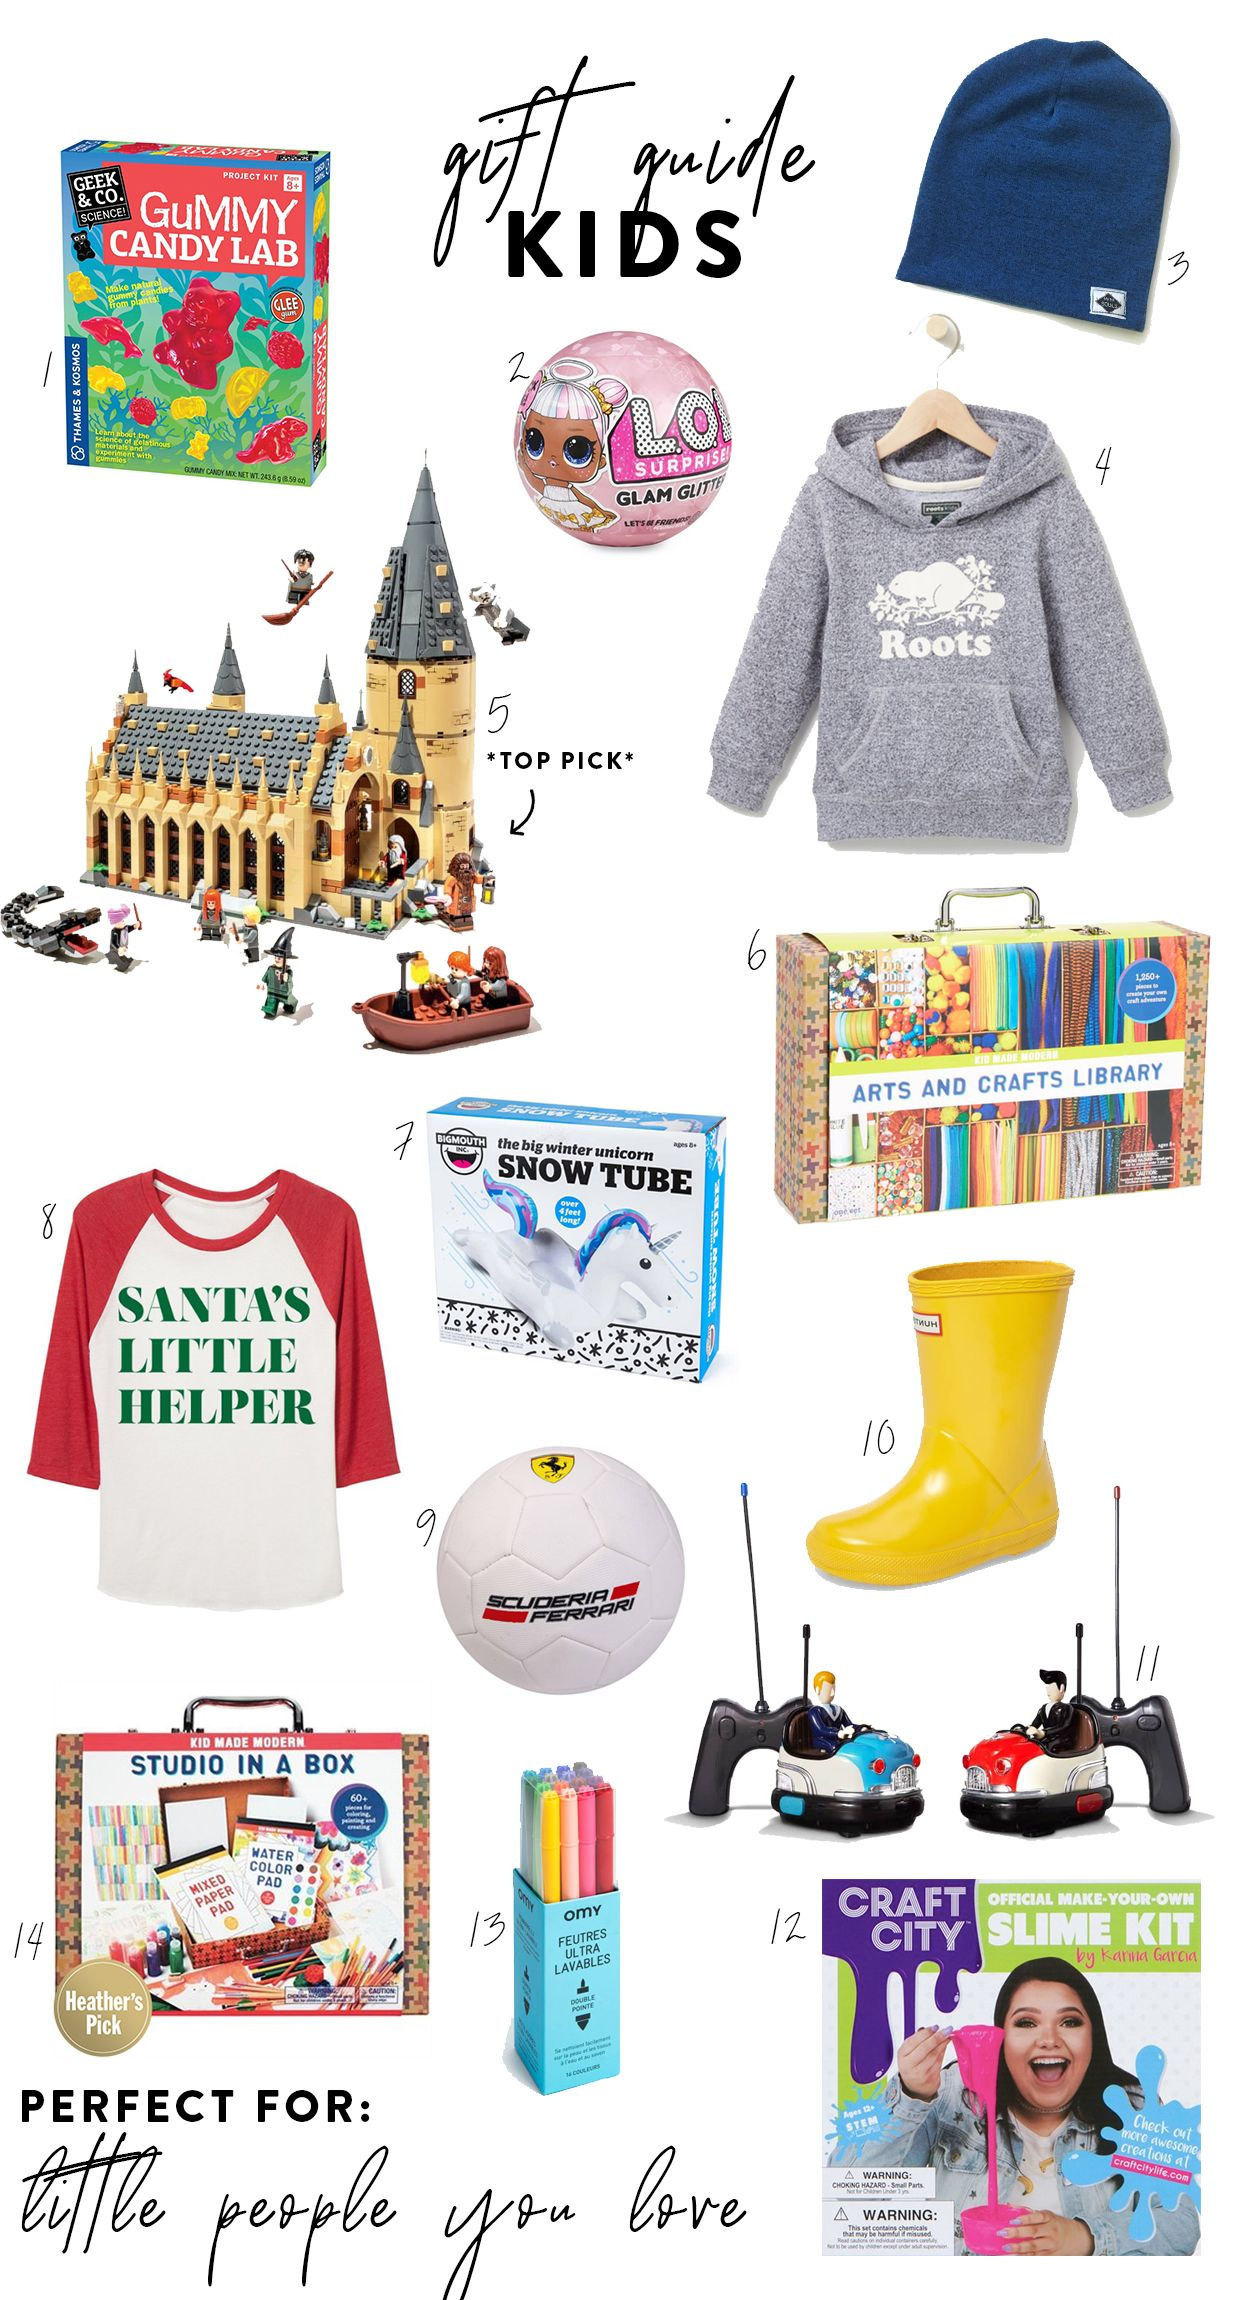 2018 HOLIDAY GIFT GUIDE Holiday gift guide, Christmas